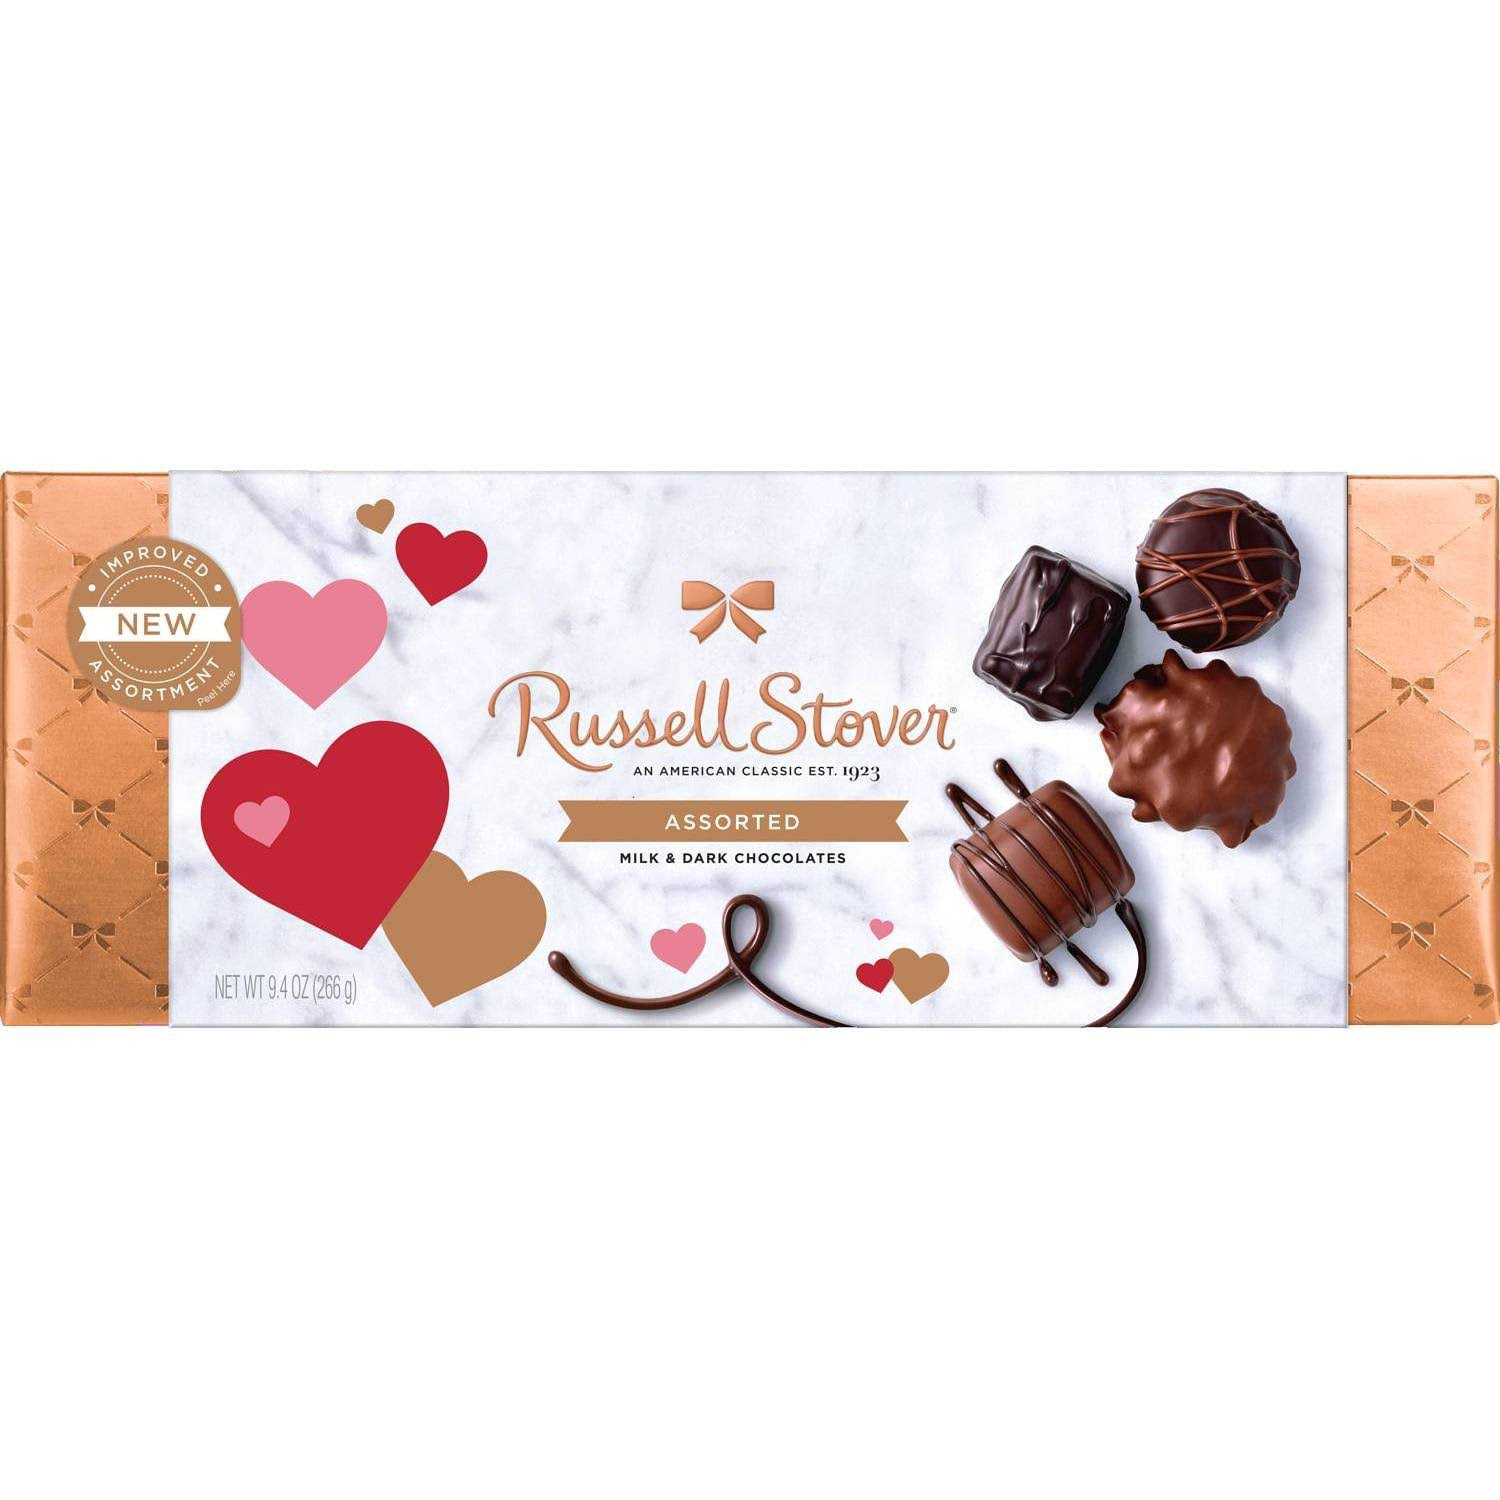 Russell Stover Chocolate, Milk & Dark, Assorted - 9.4 oz